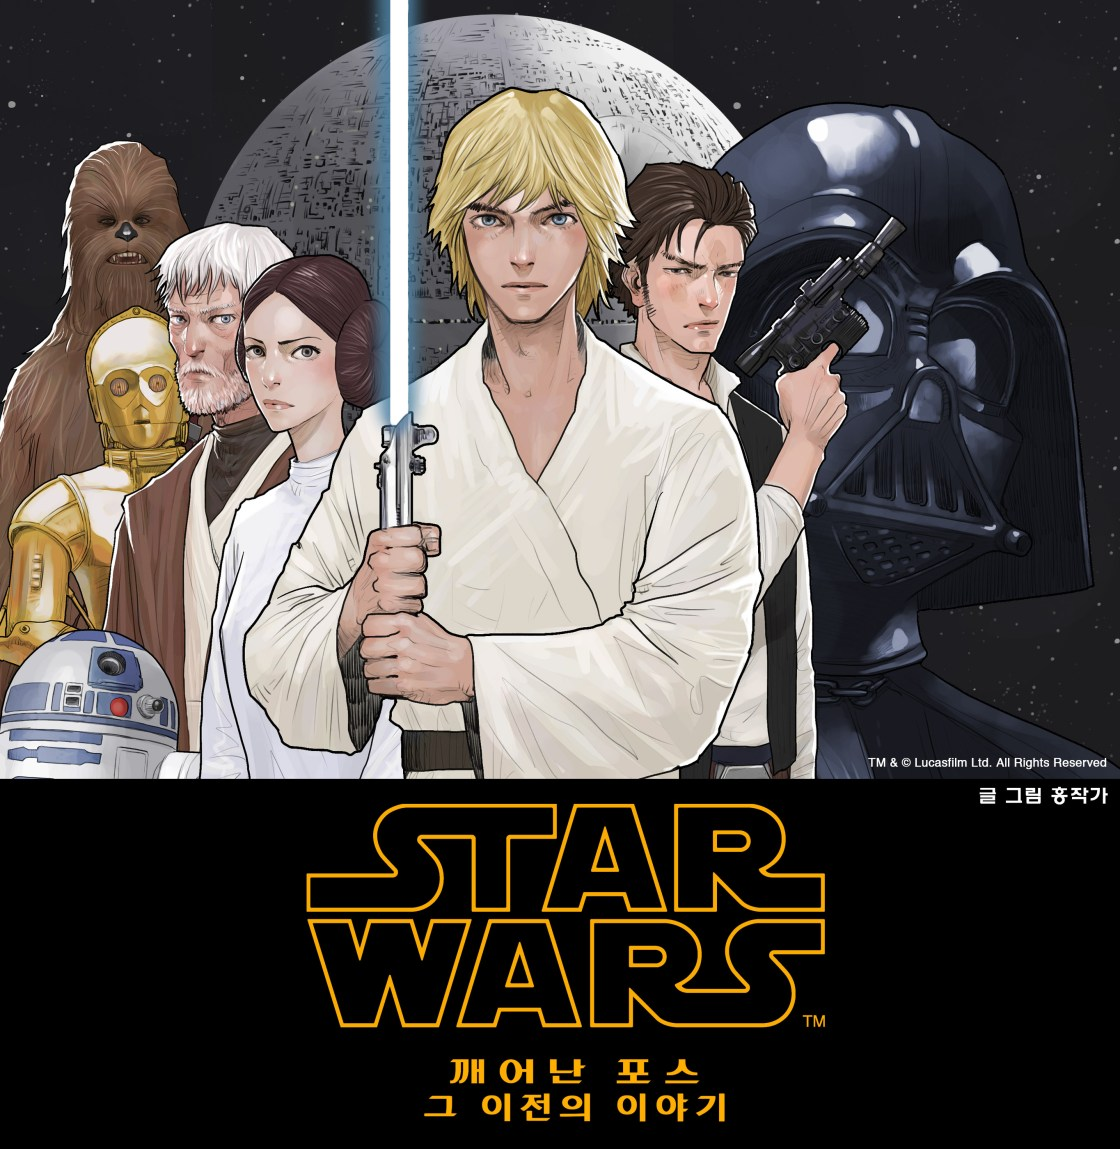 Star-Wars-Webtoon_poster-art